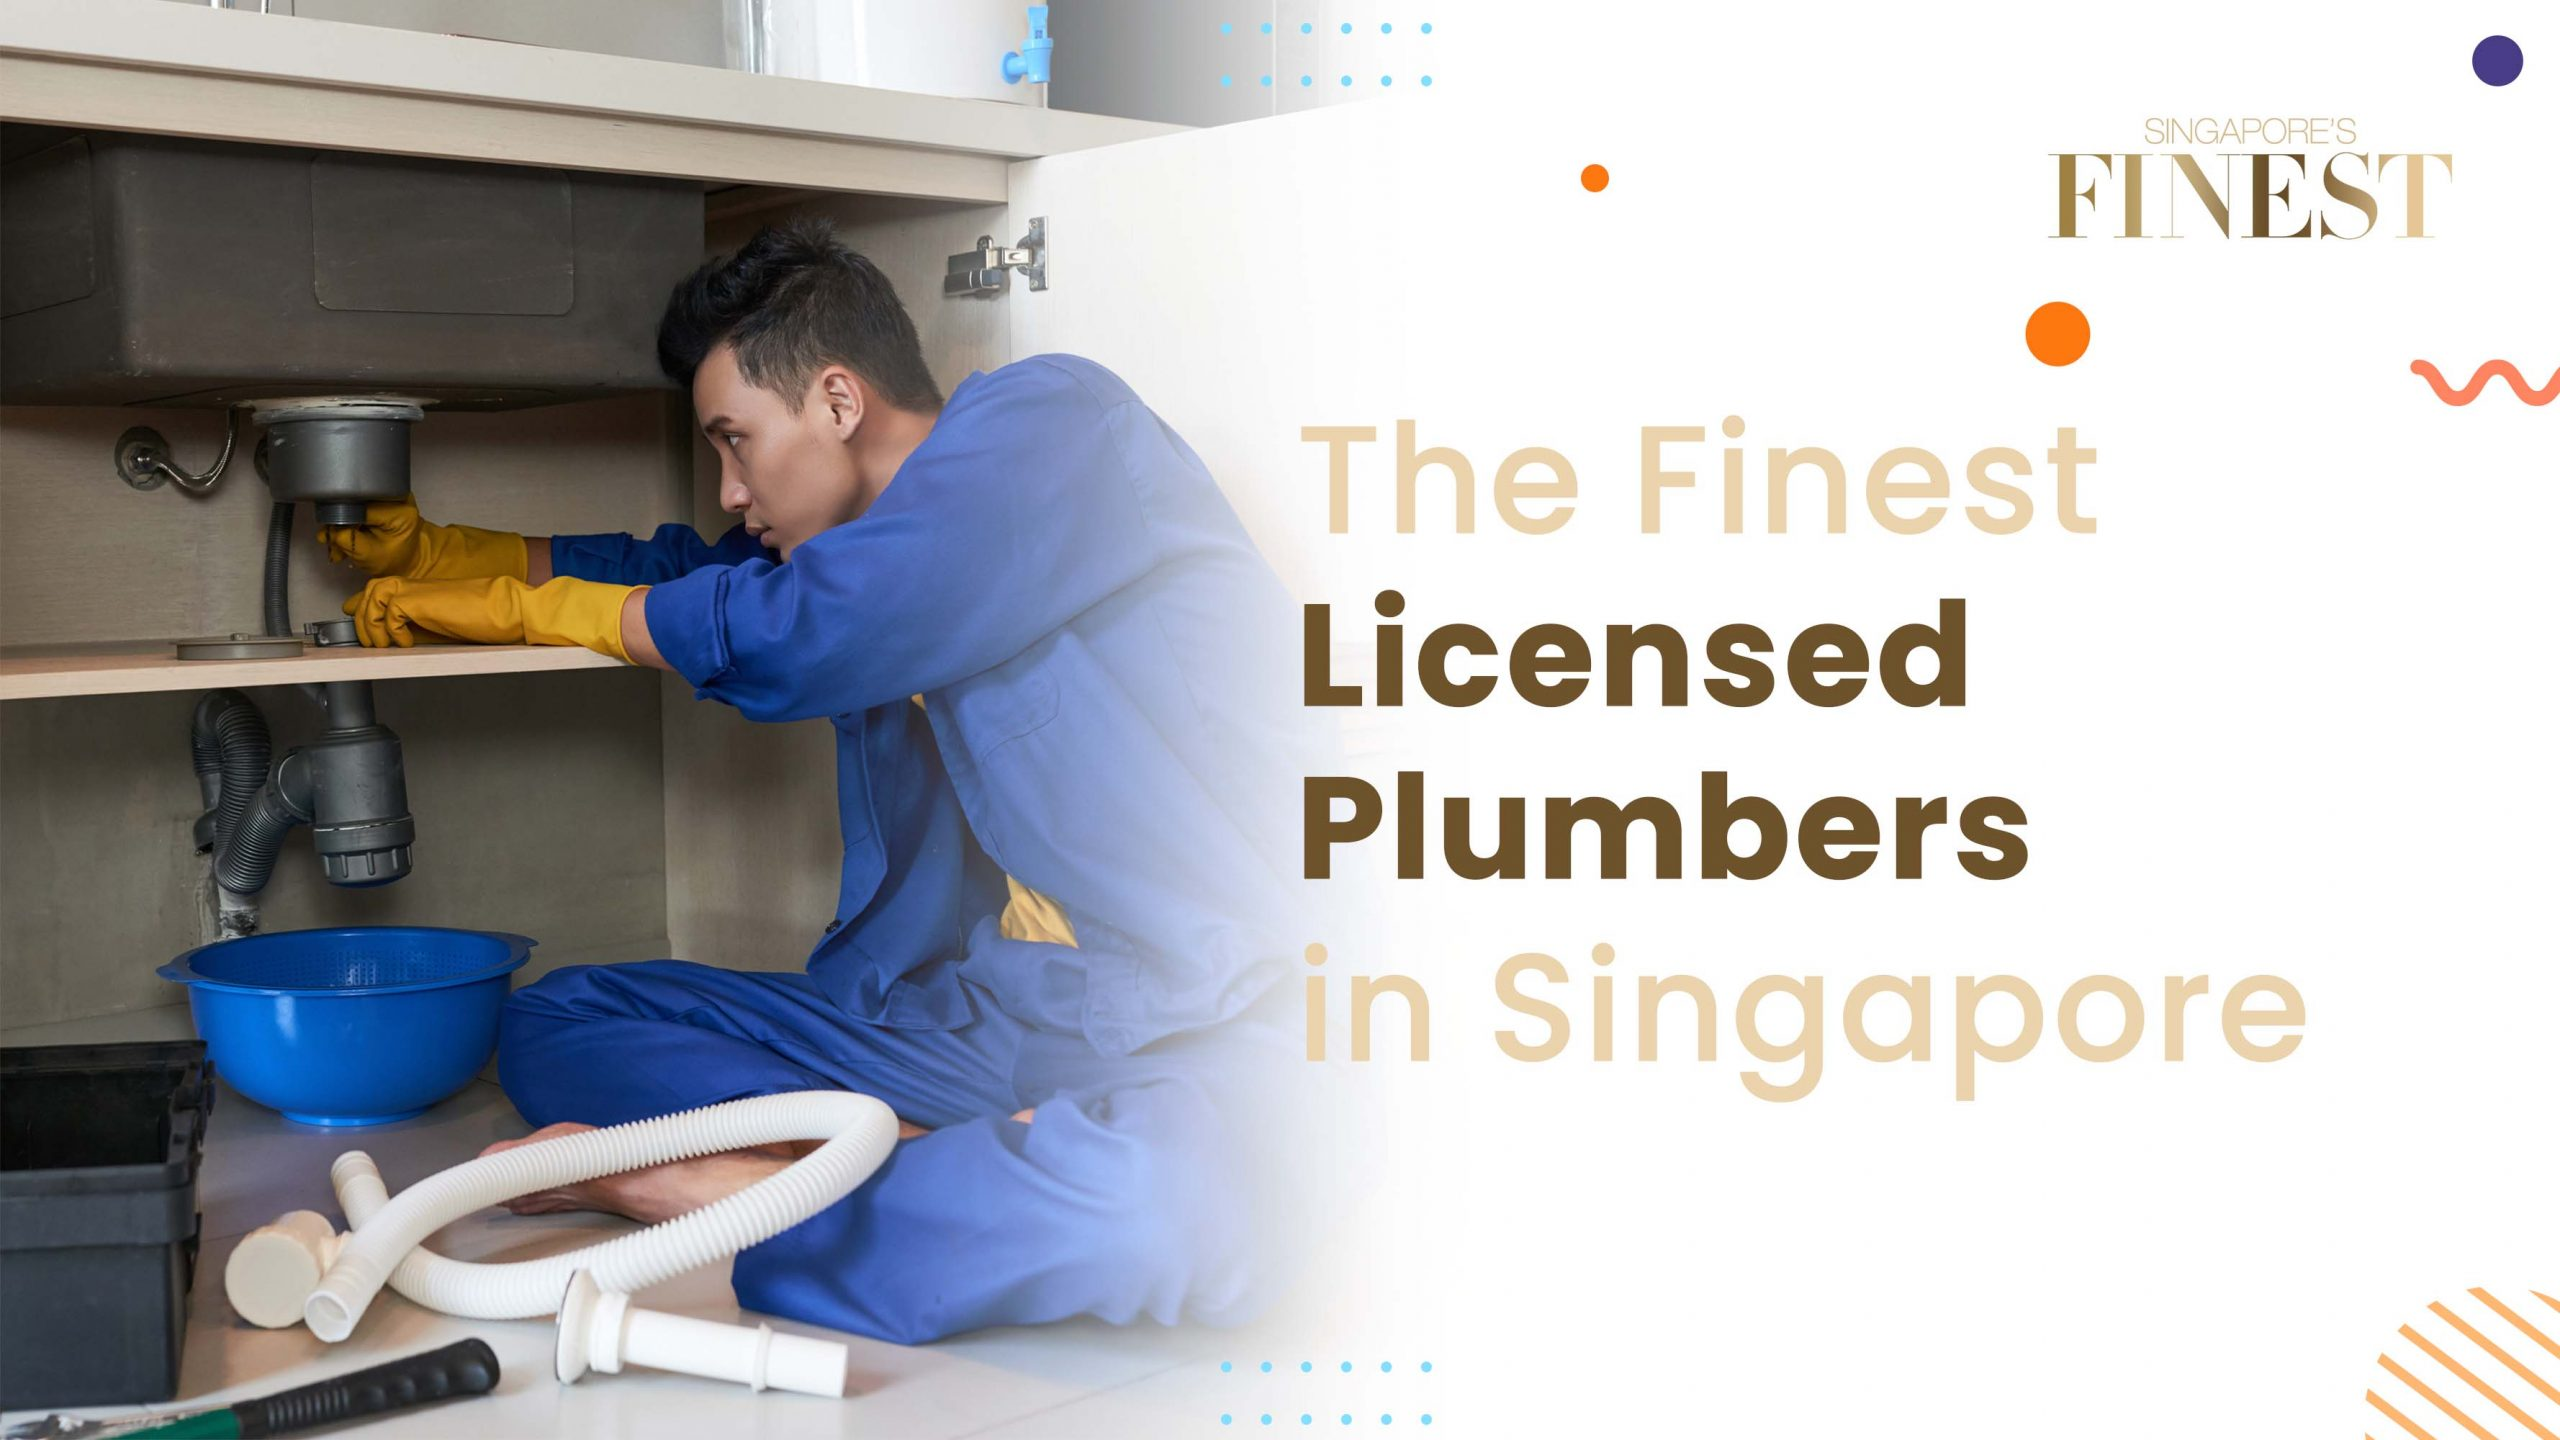 Finest Licensed Plumbers in Singapore